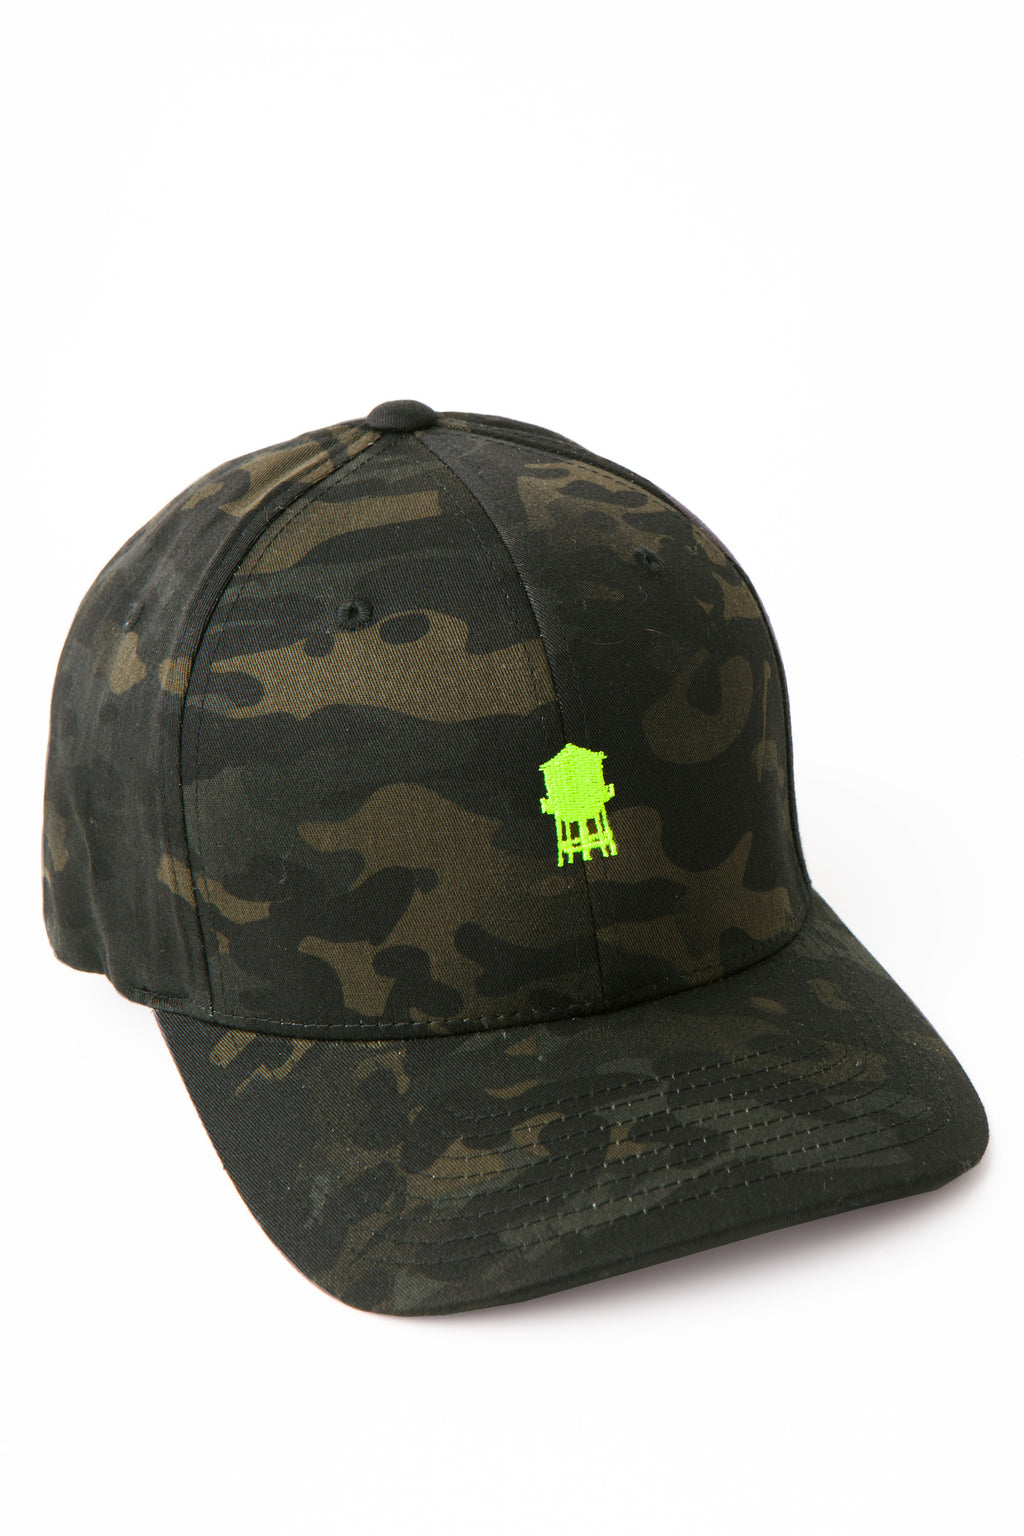 WATERTOWER CAP CAMO - BROOKLYN INDUSTRIES